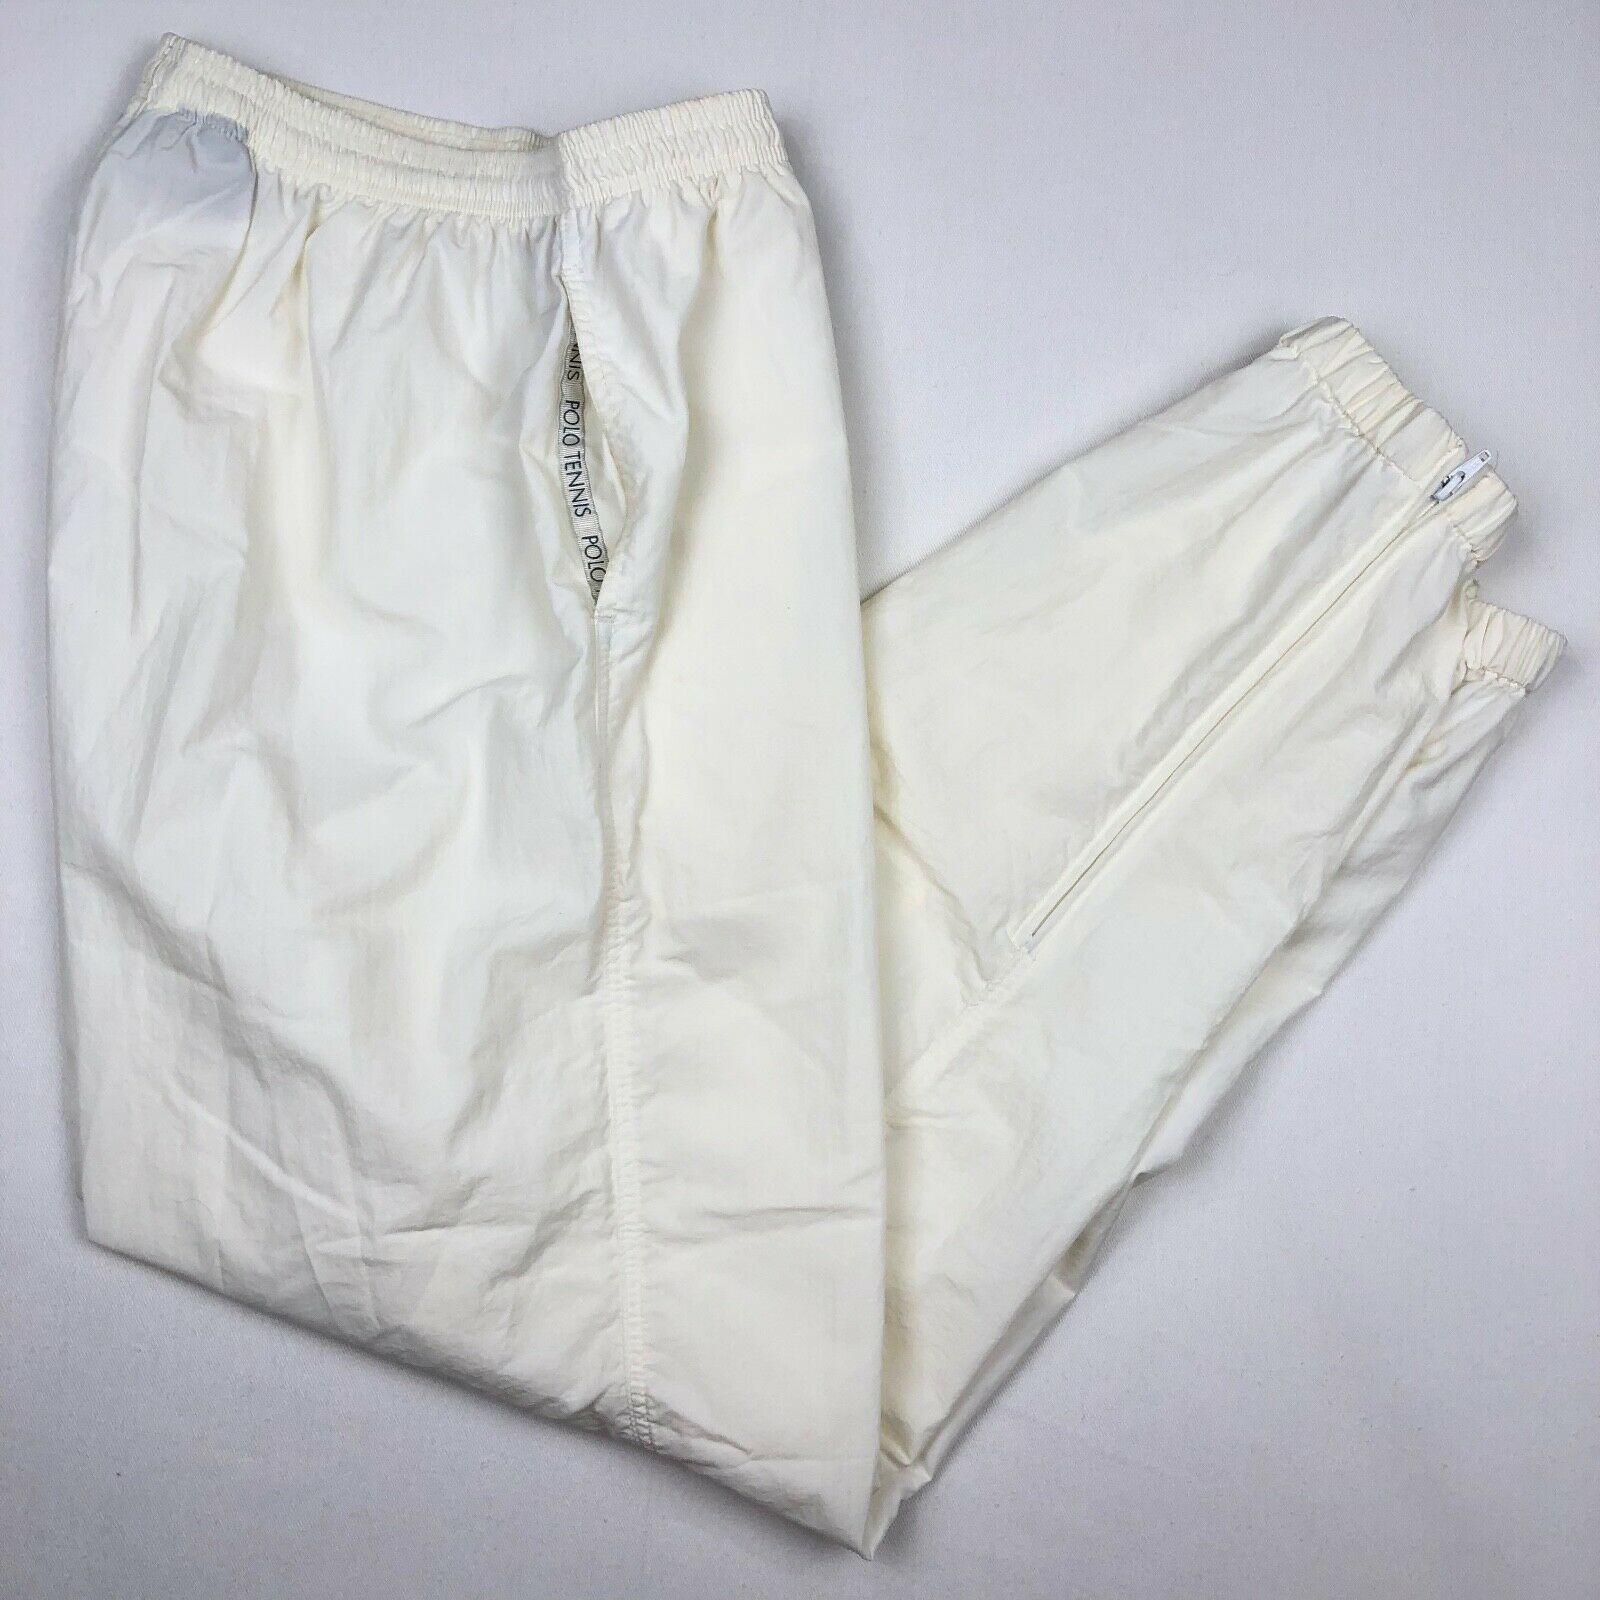 VTG 90s Ralph Lauren POLO SPORT TENNIS Mens White Windbreaker Jogger Pants LARGE